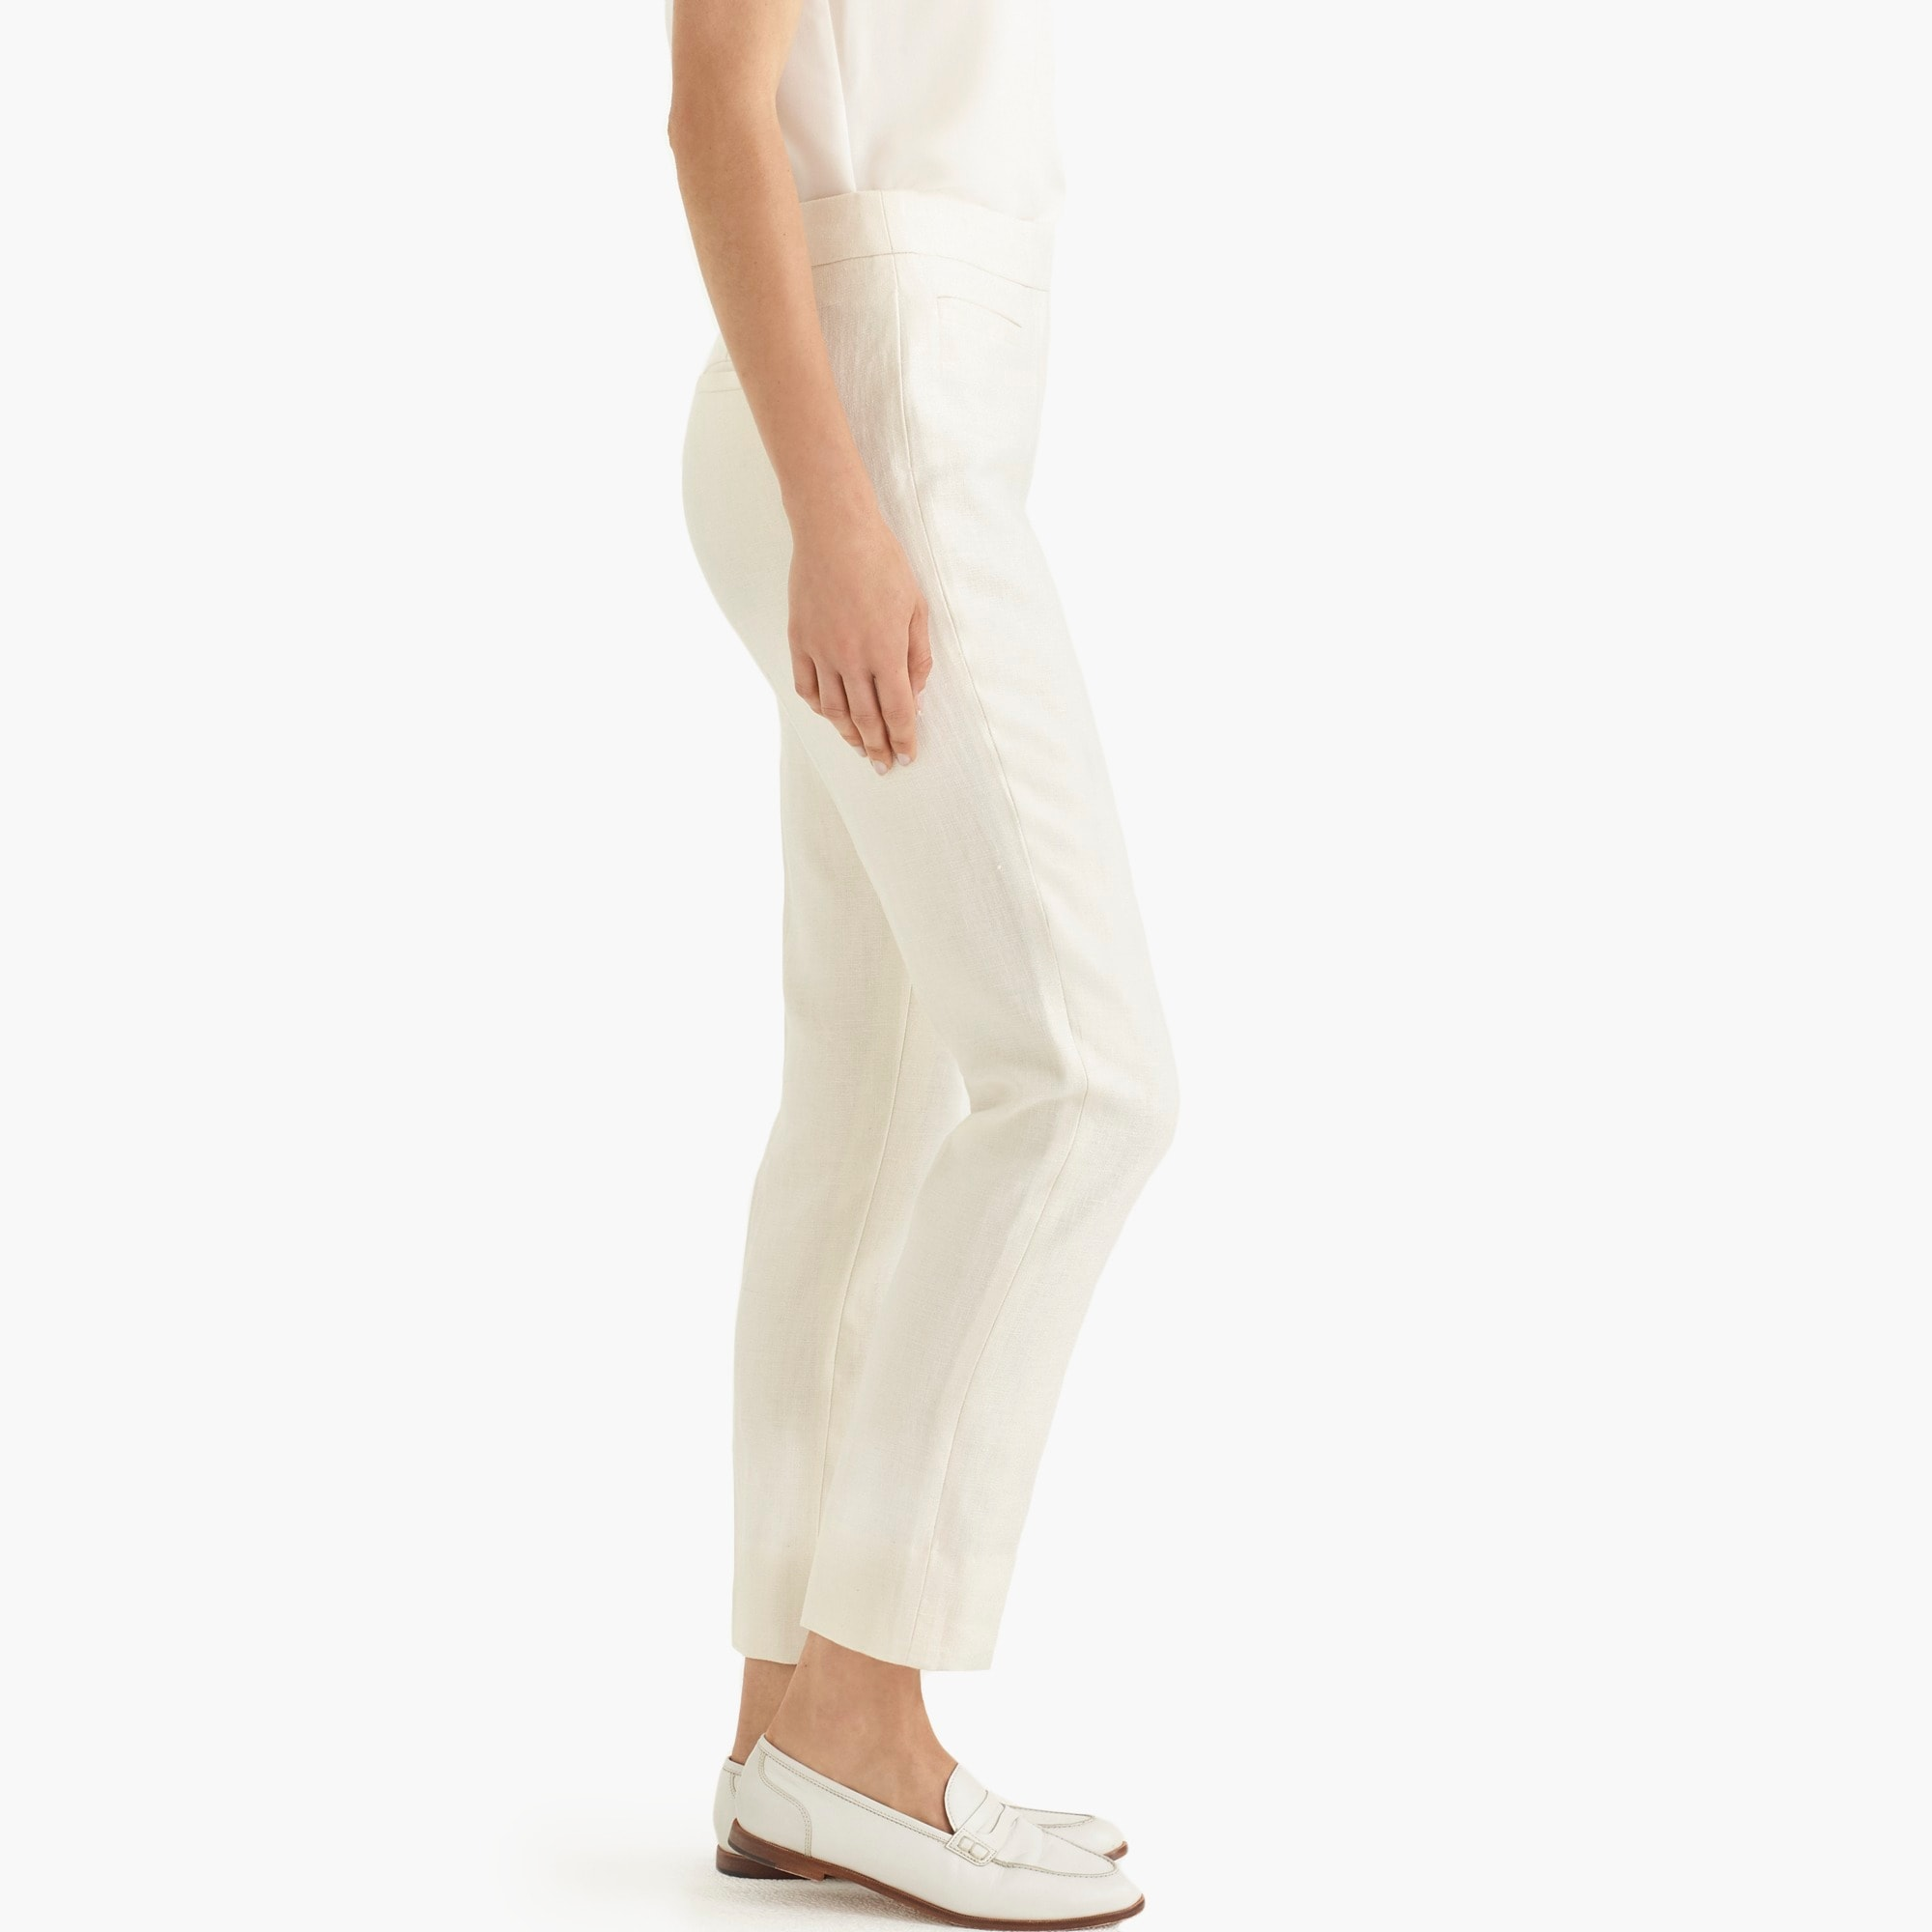 Image 5 for Petite French girl slim crop pant in linen